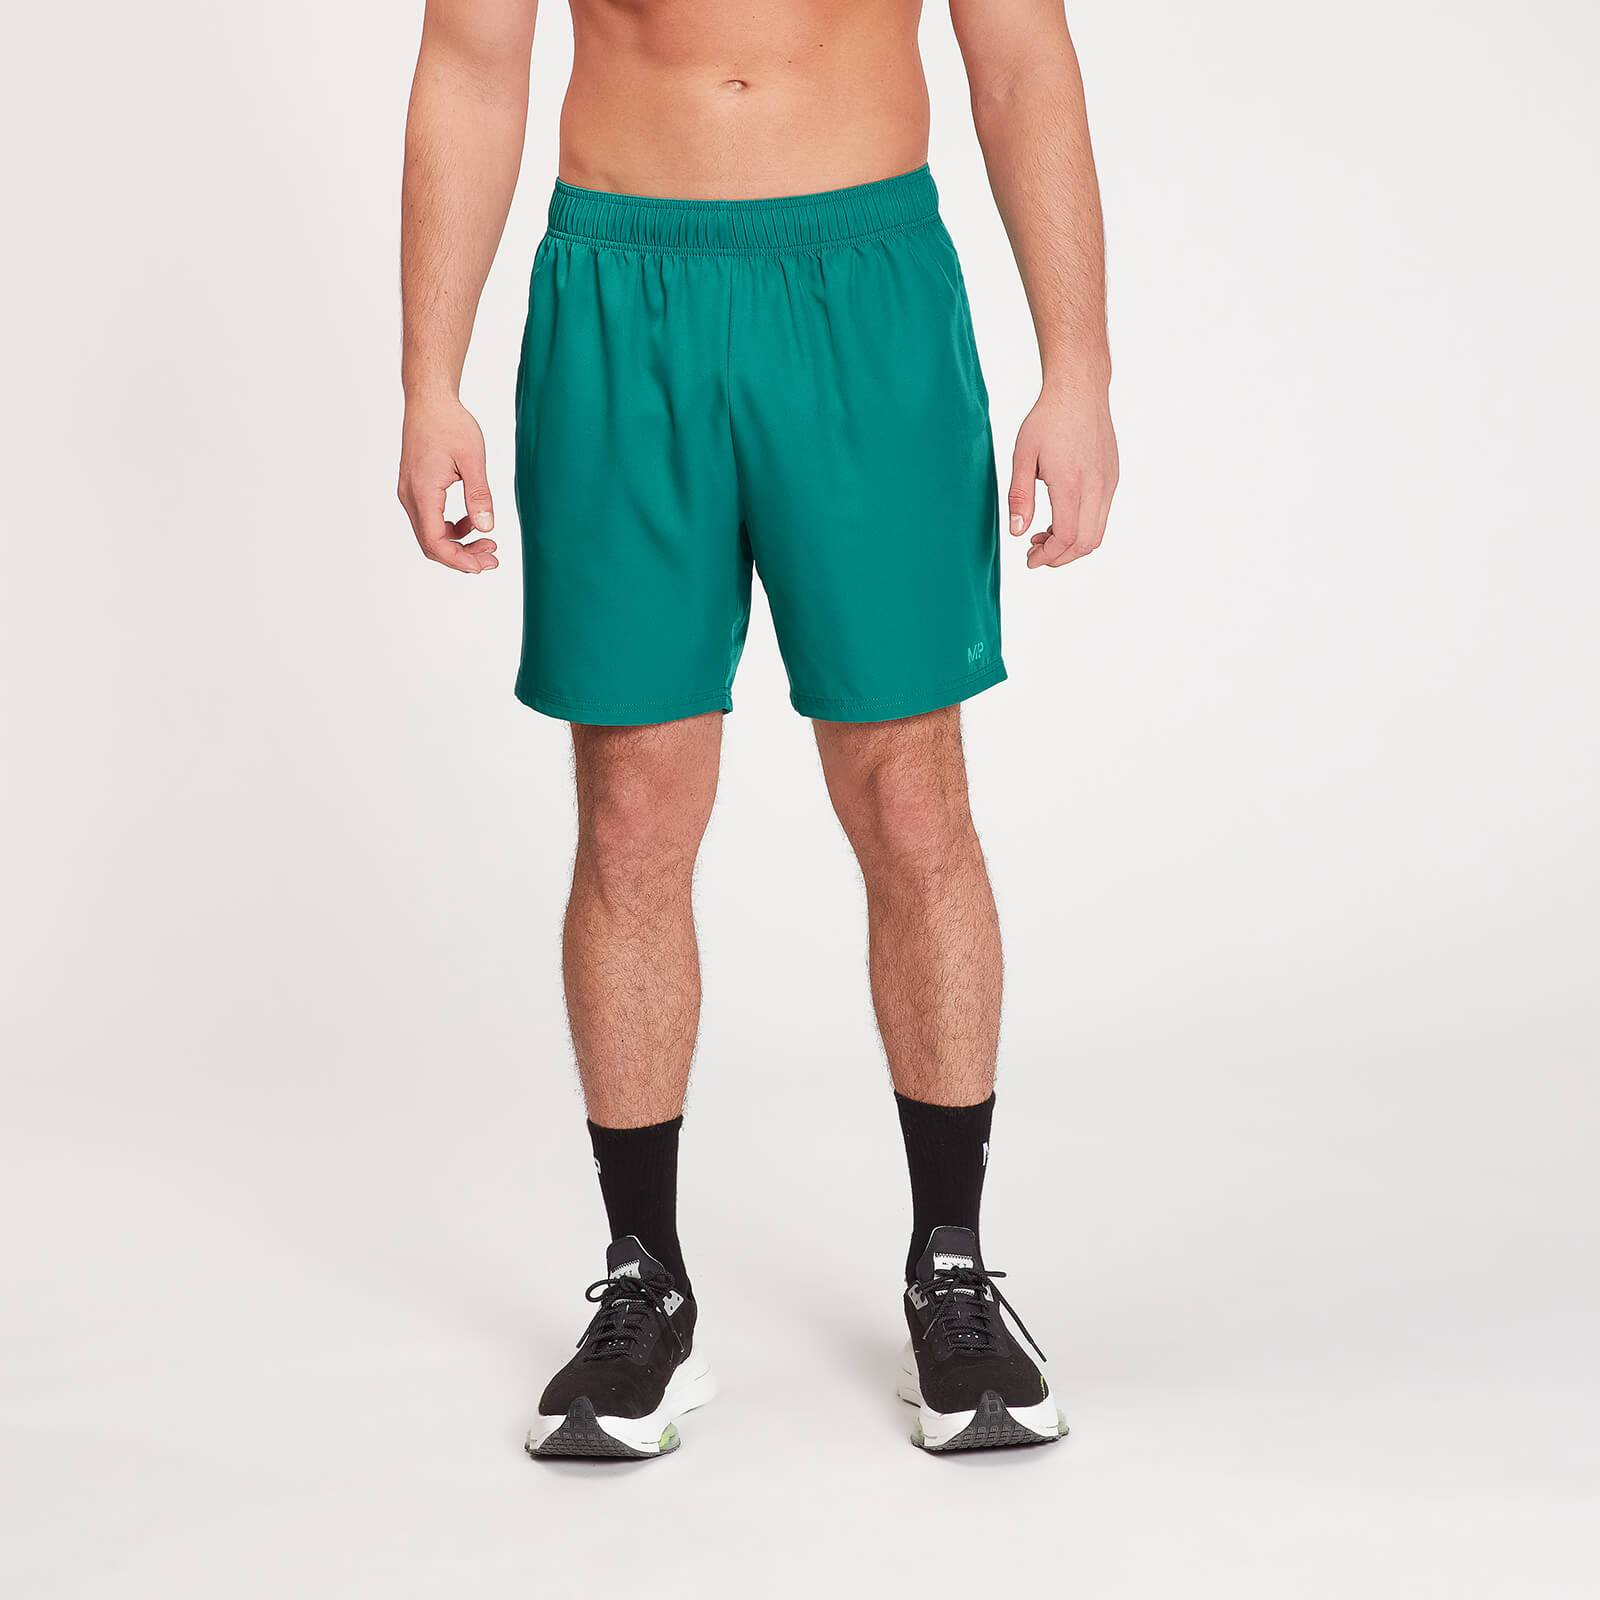 Myprotein Mp Fade Graphic Training Shorts Til Mænd - Energy Green - Xs